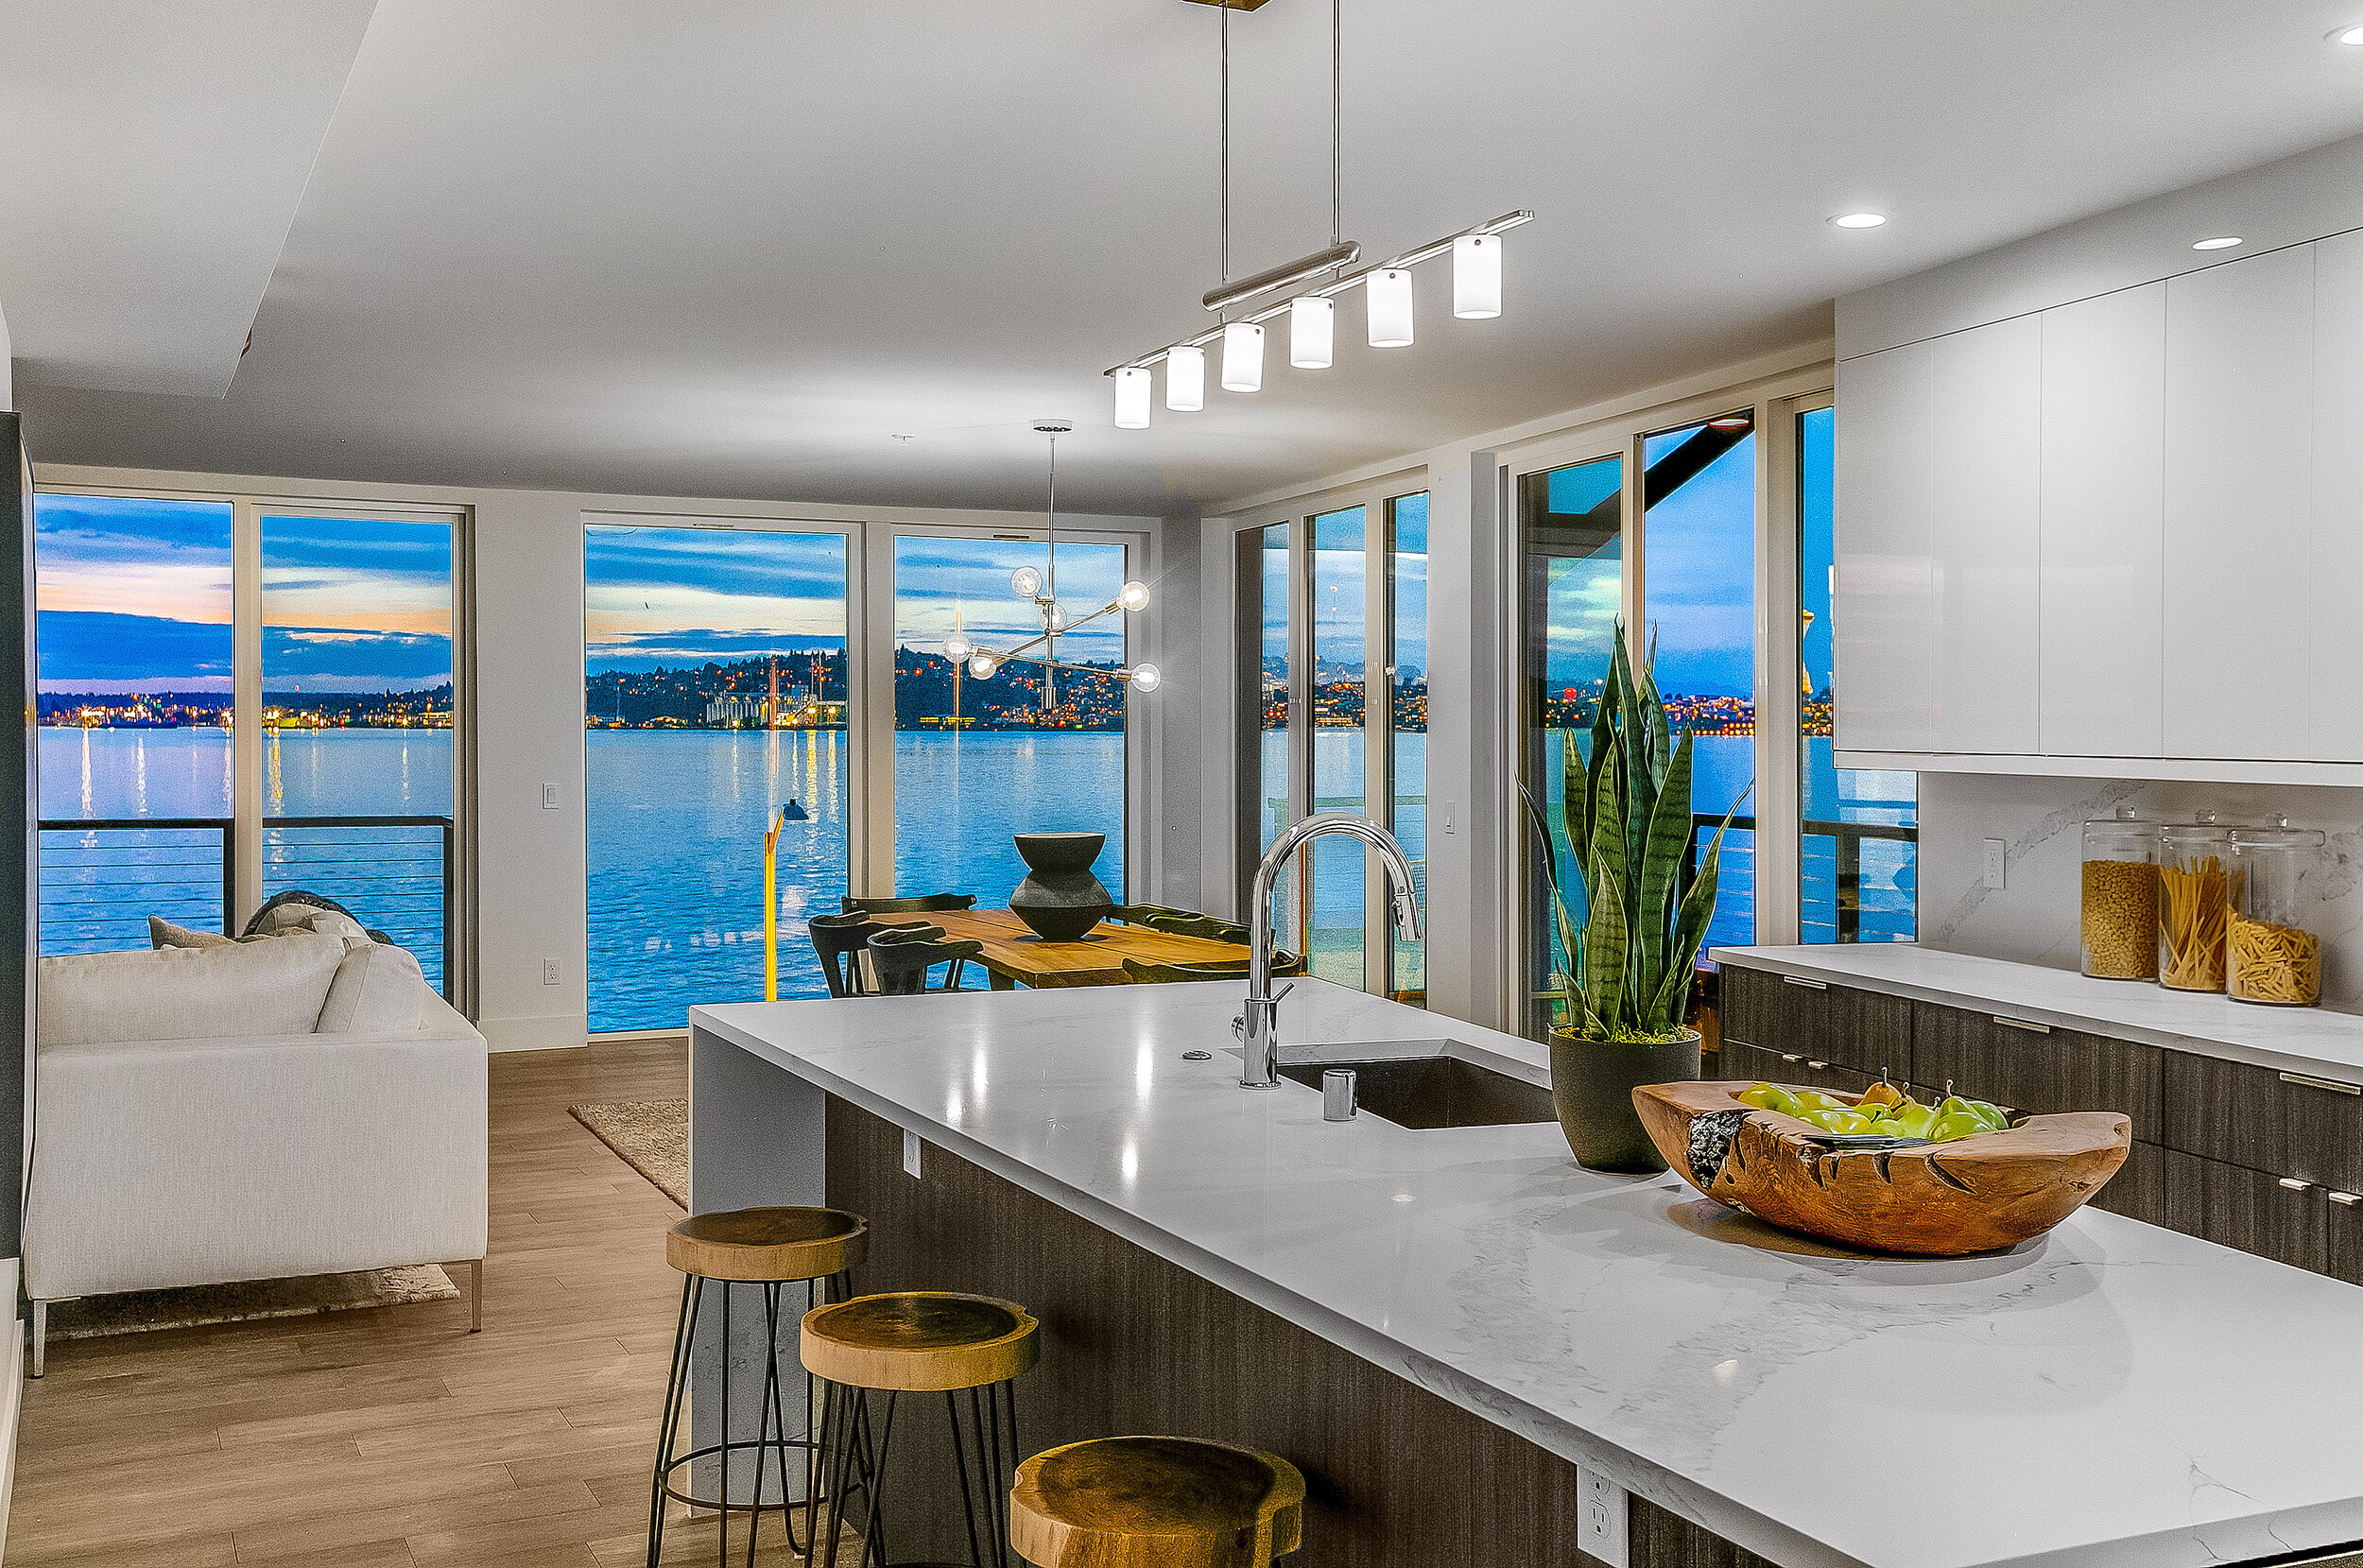 New Seattle condos: Update on the Pinnacle at Alki